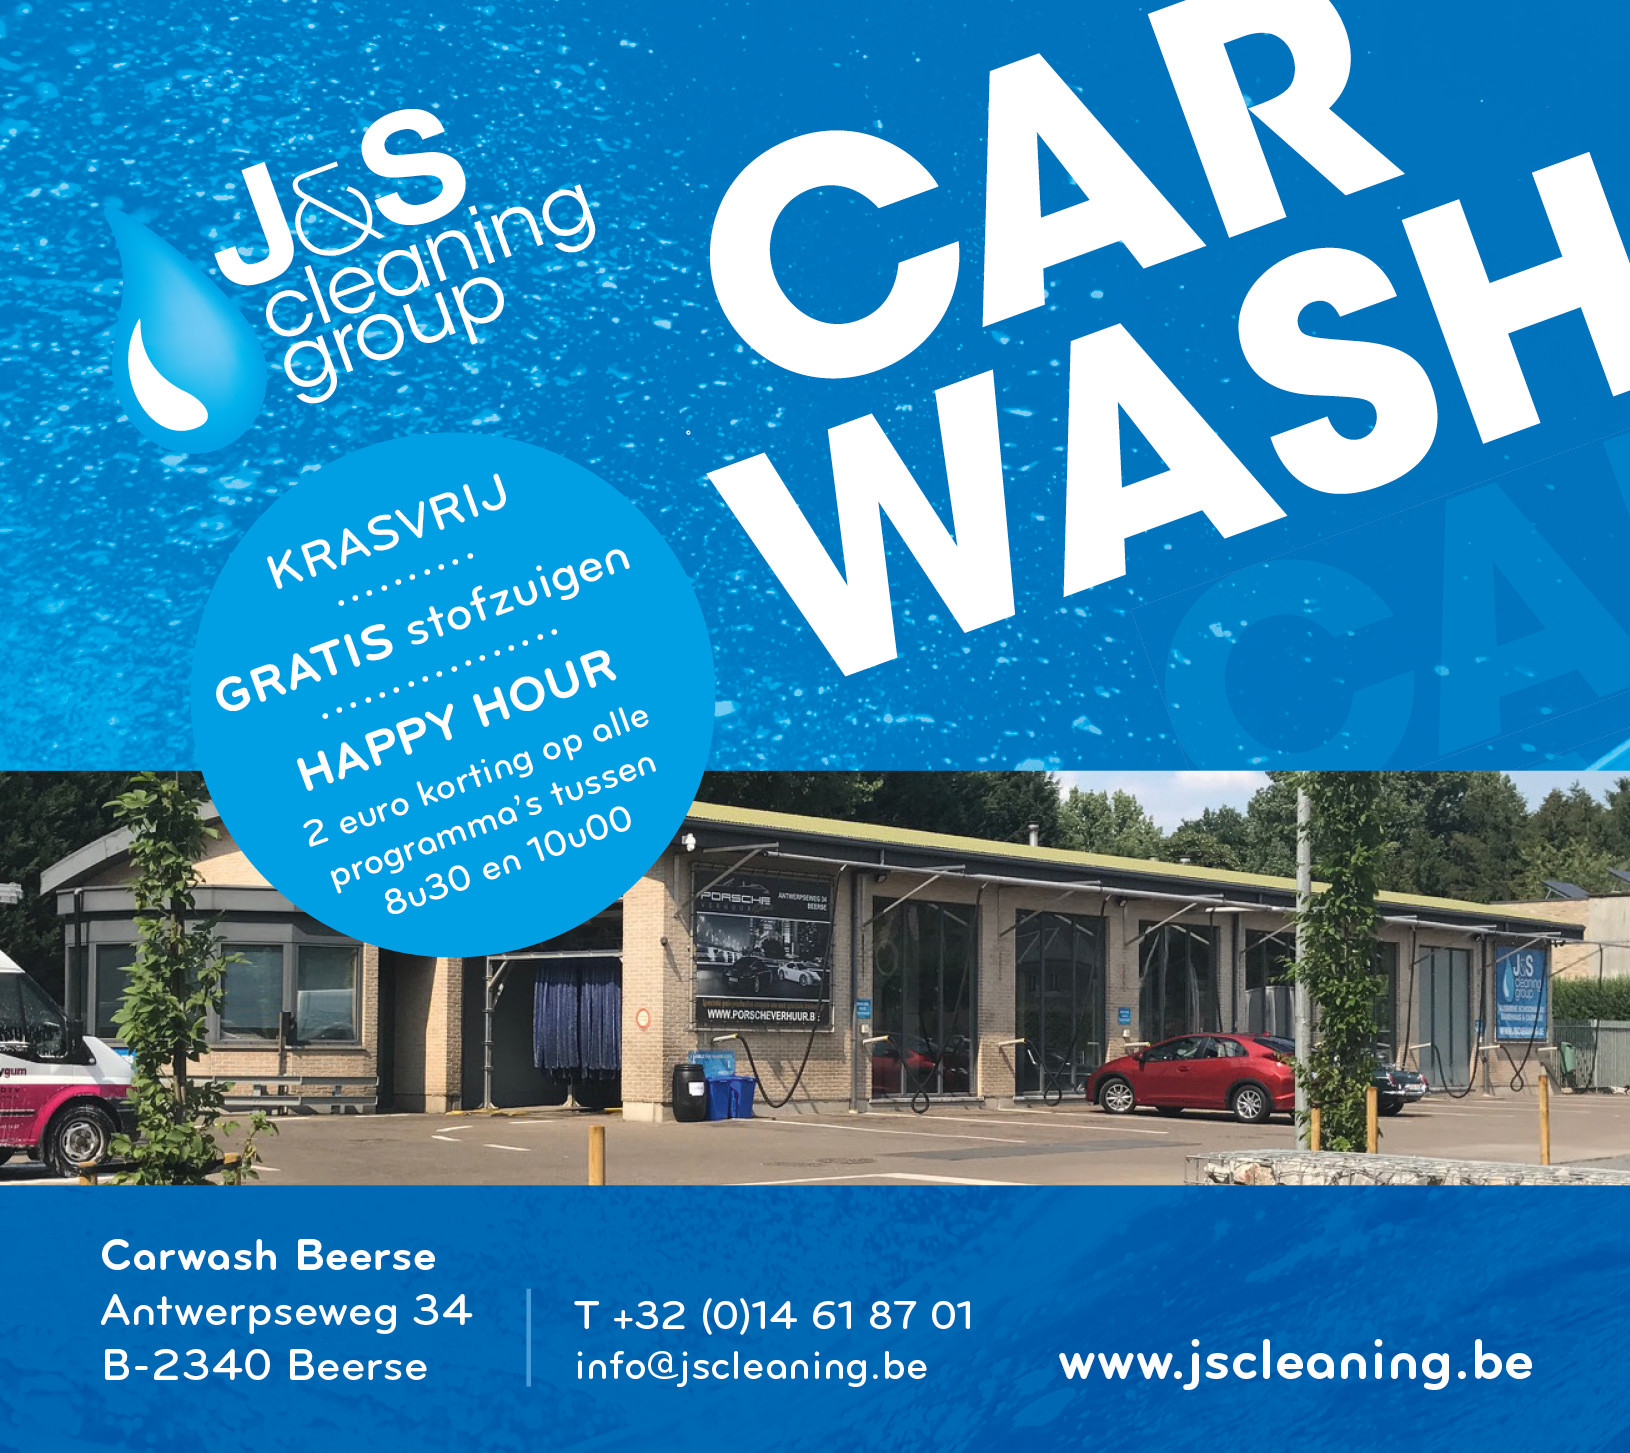 js_carwash_beerse_sept_2019.jpg